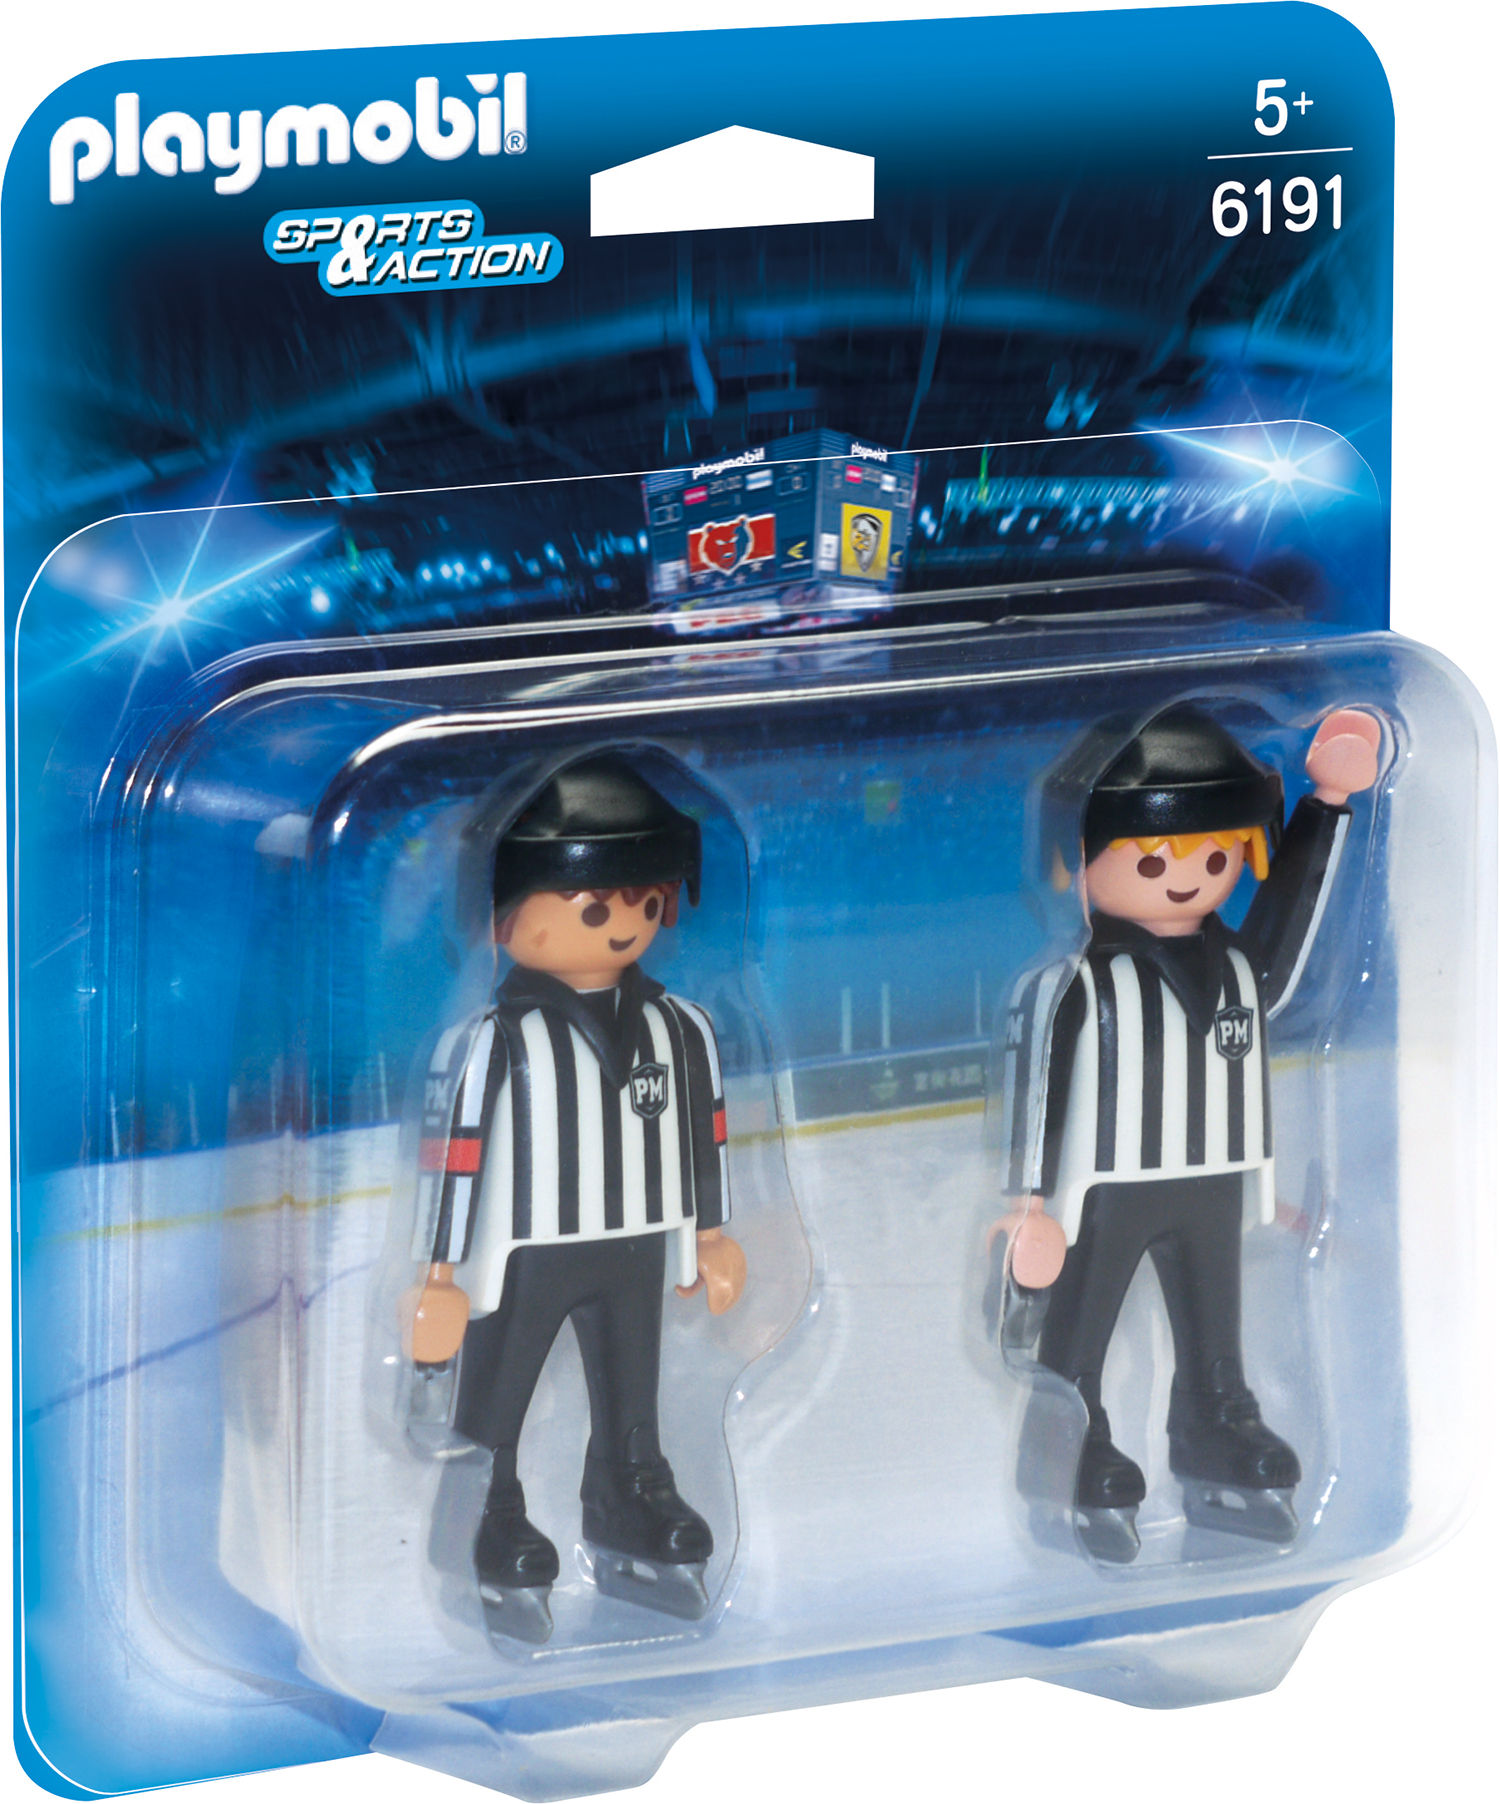 Playmobil Sports & Action - ECHIPA DE ARBITRAJ LA HOCHEI